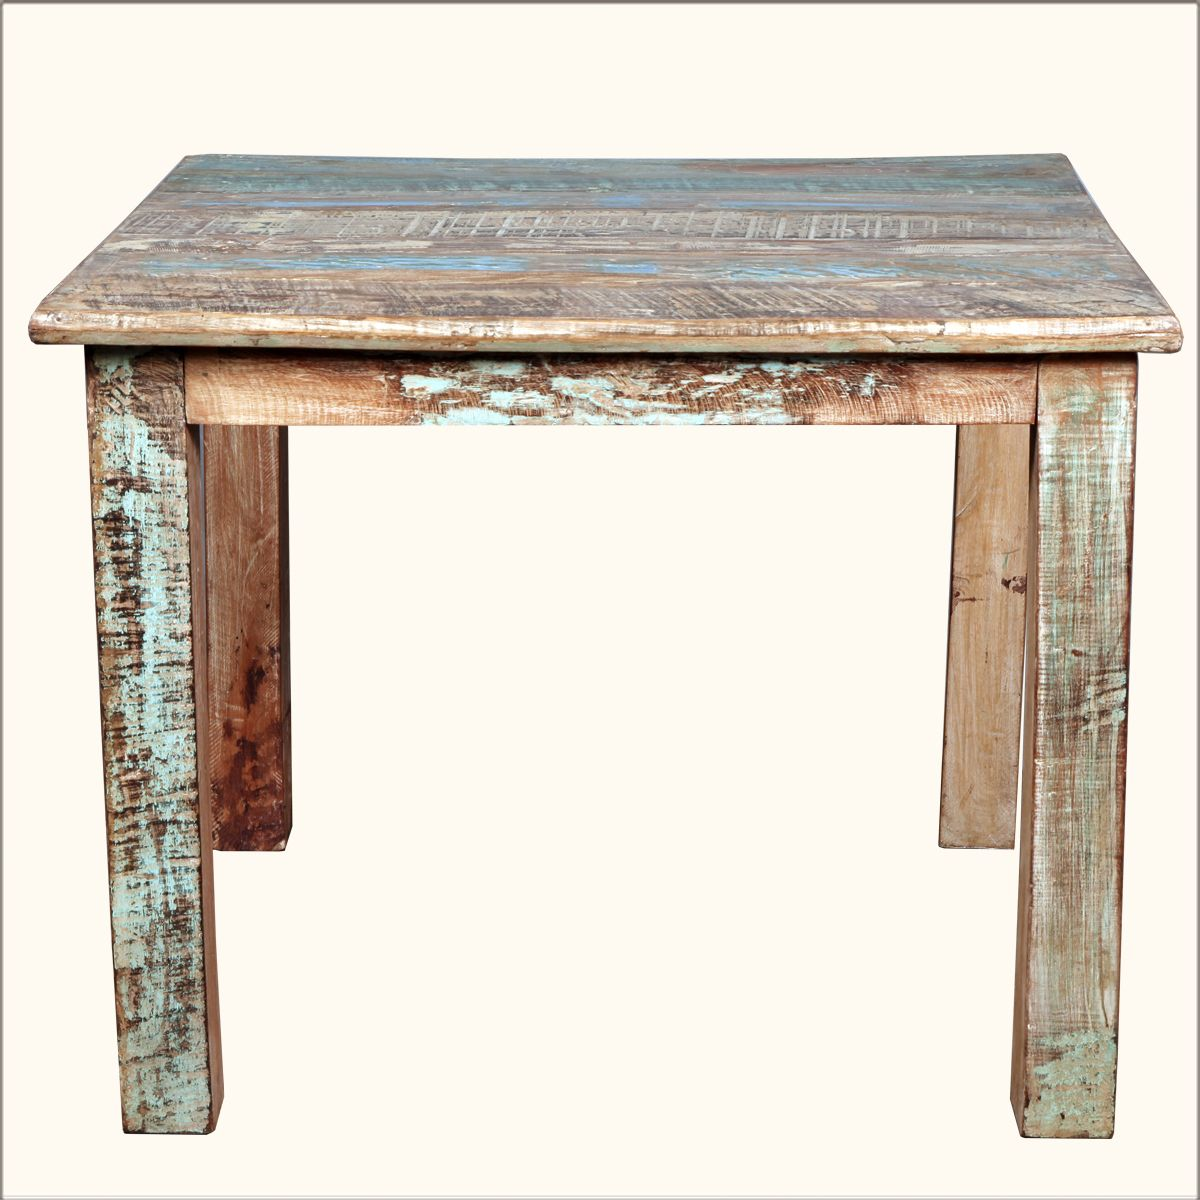 "Rustic Reclaimed Wood Distressed 40"" Square Kitchen Dining ..."